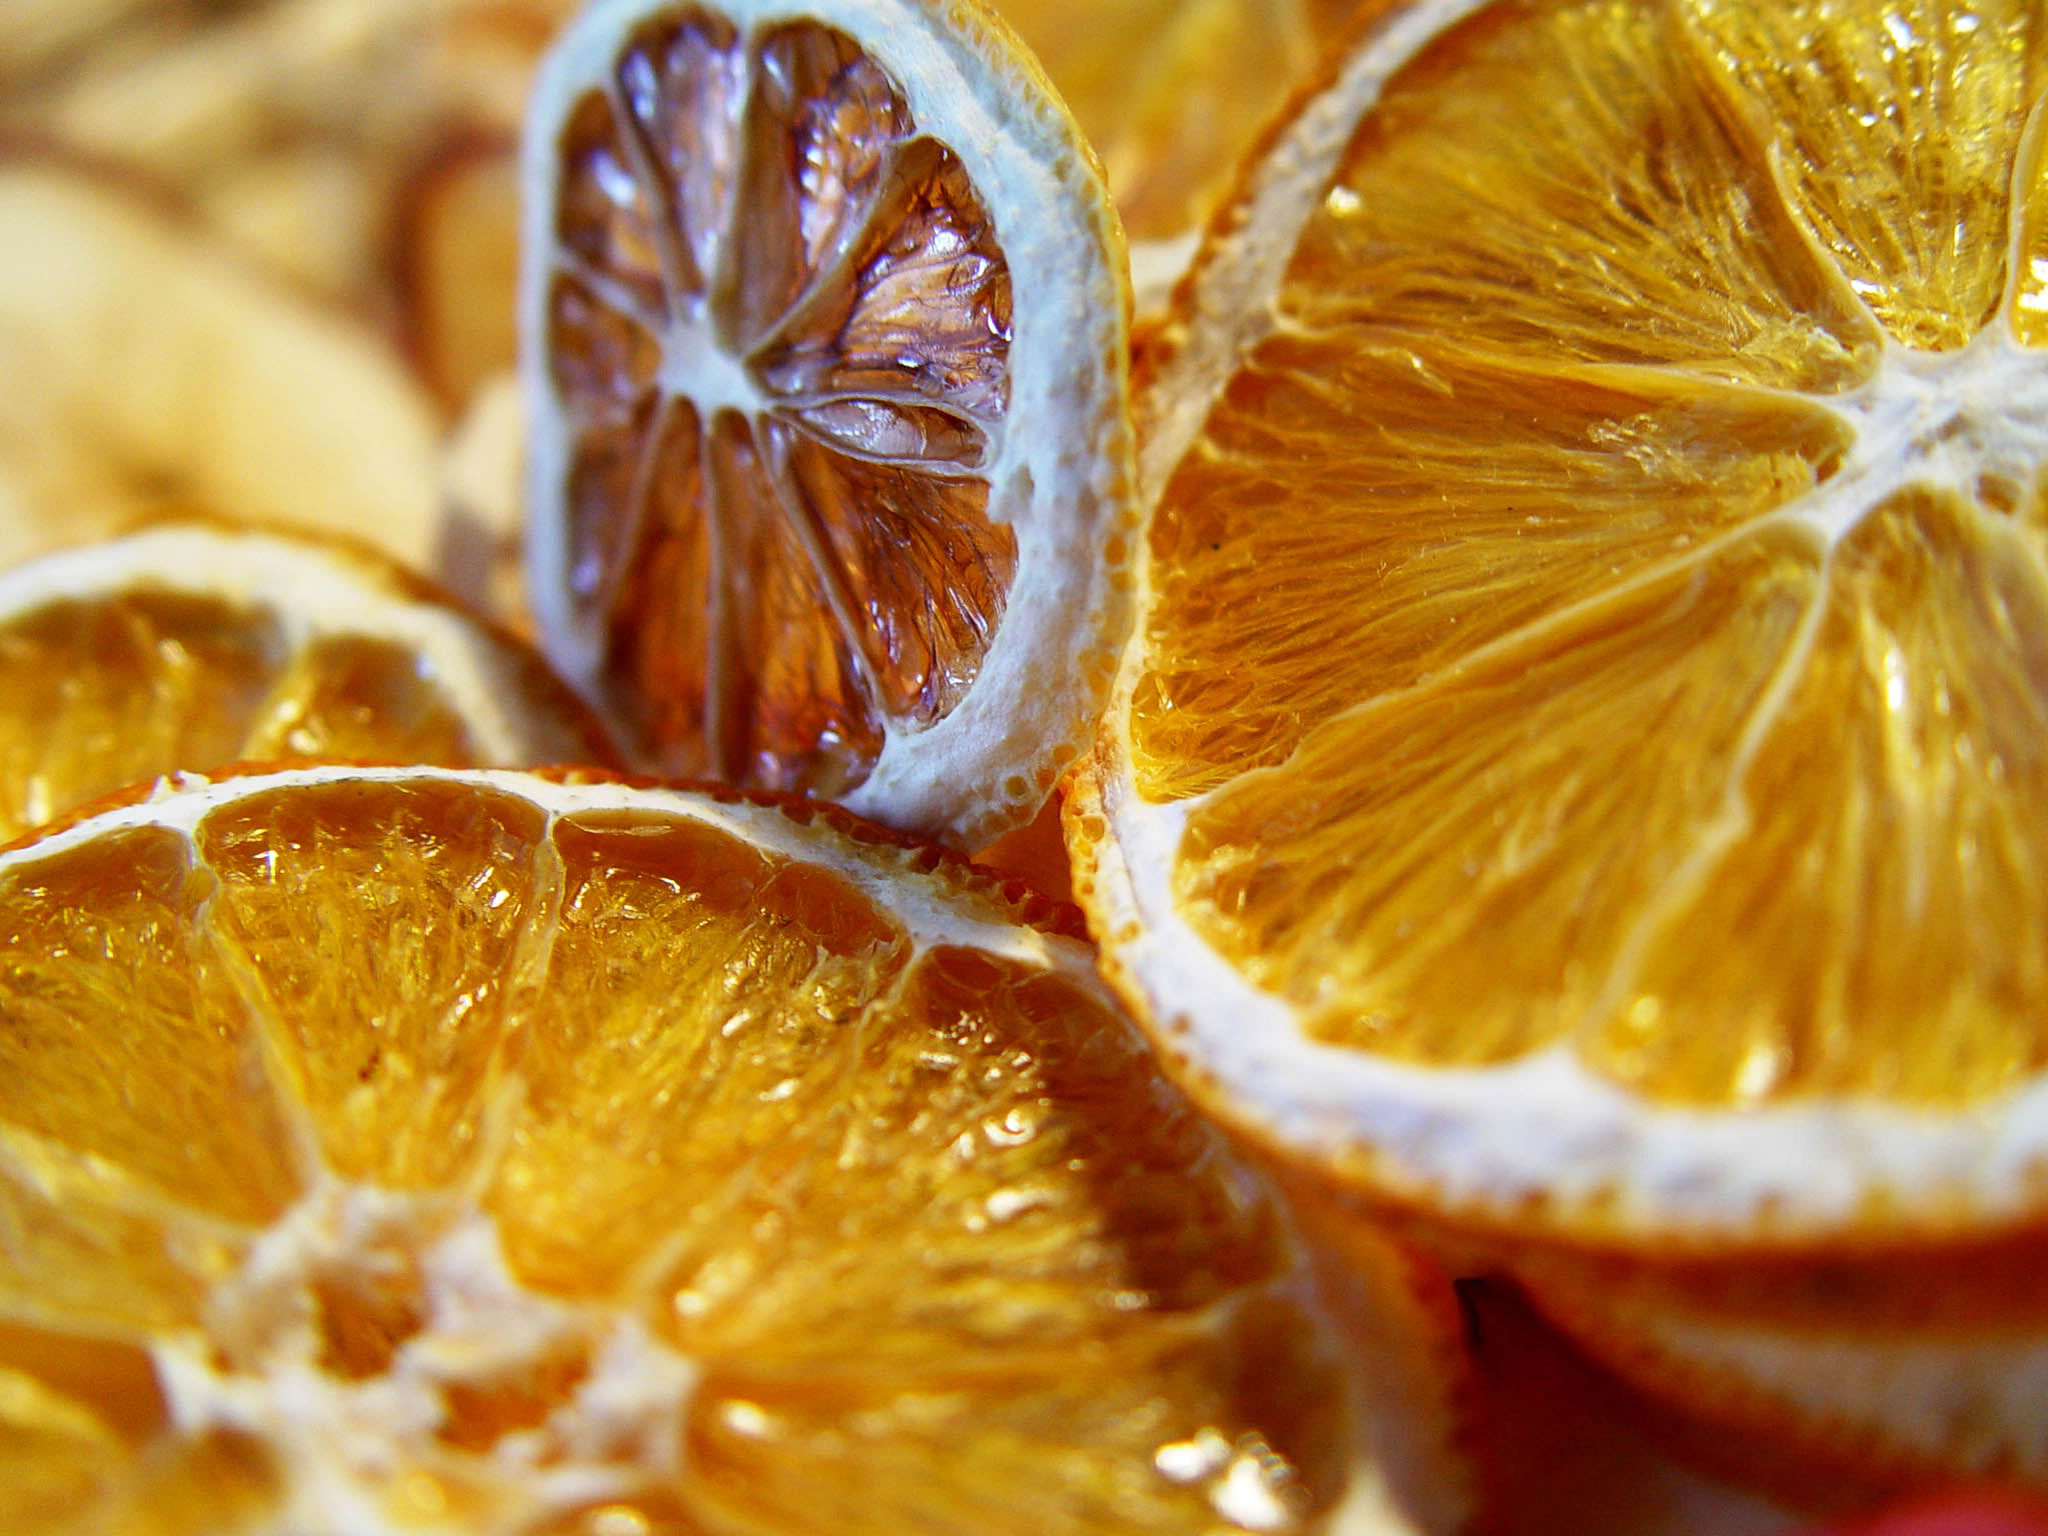 Dry fruits wallpaper - Dried Fruits Wallpaper Download Free